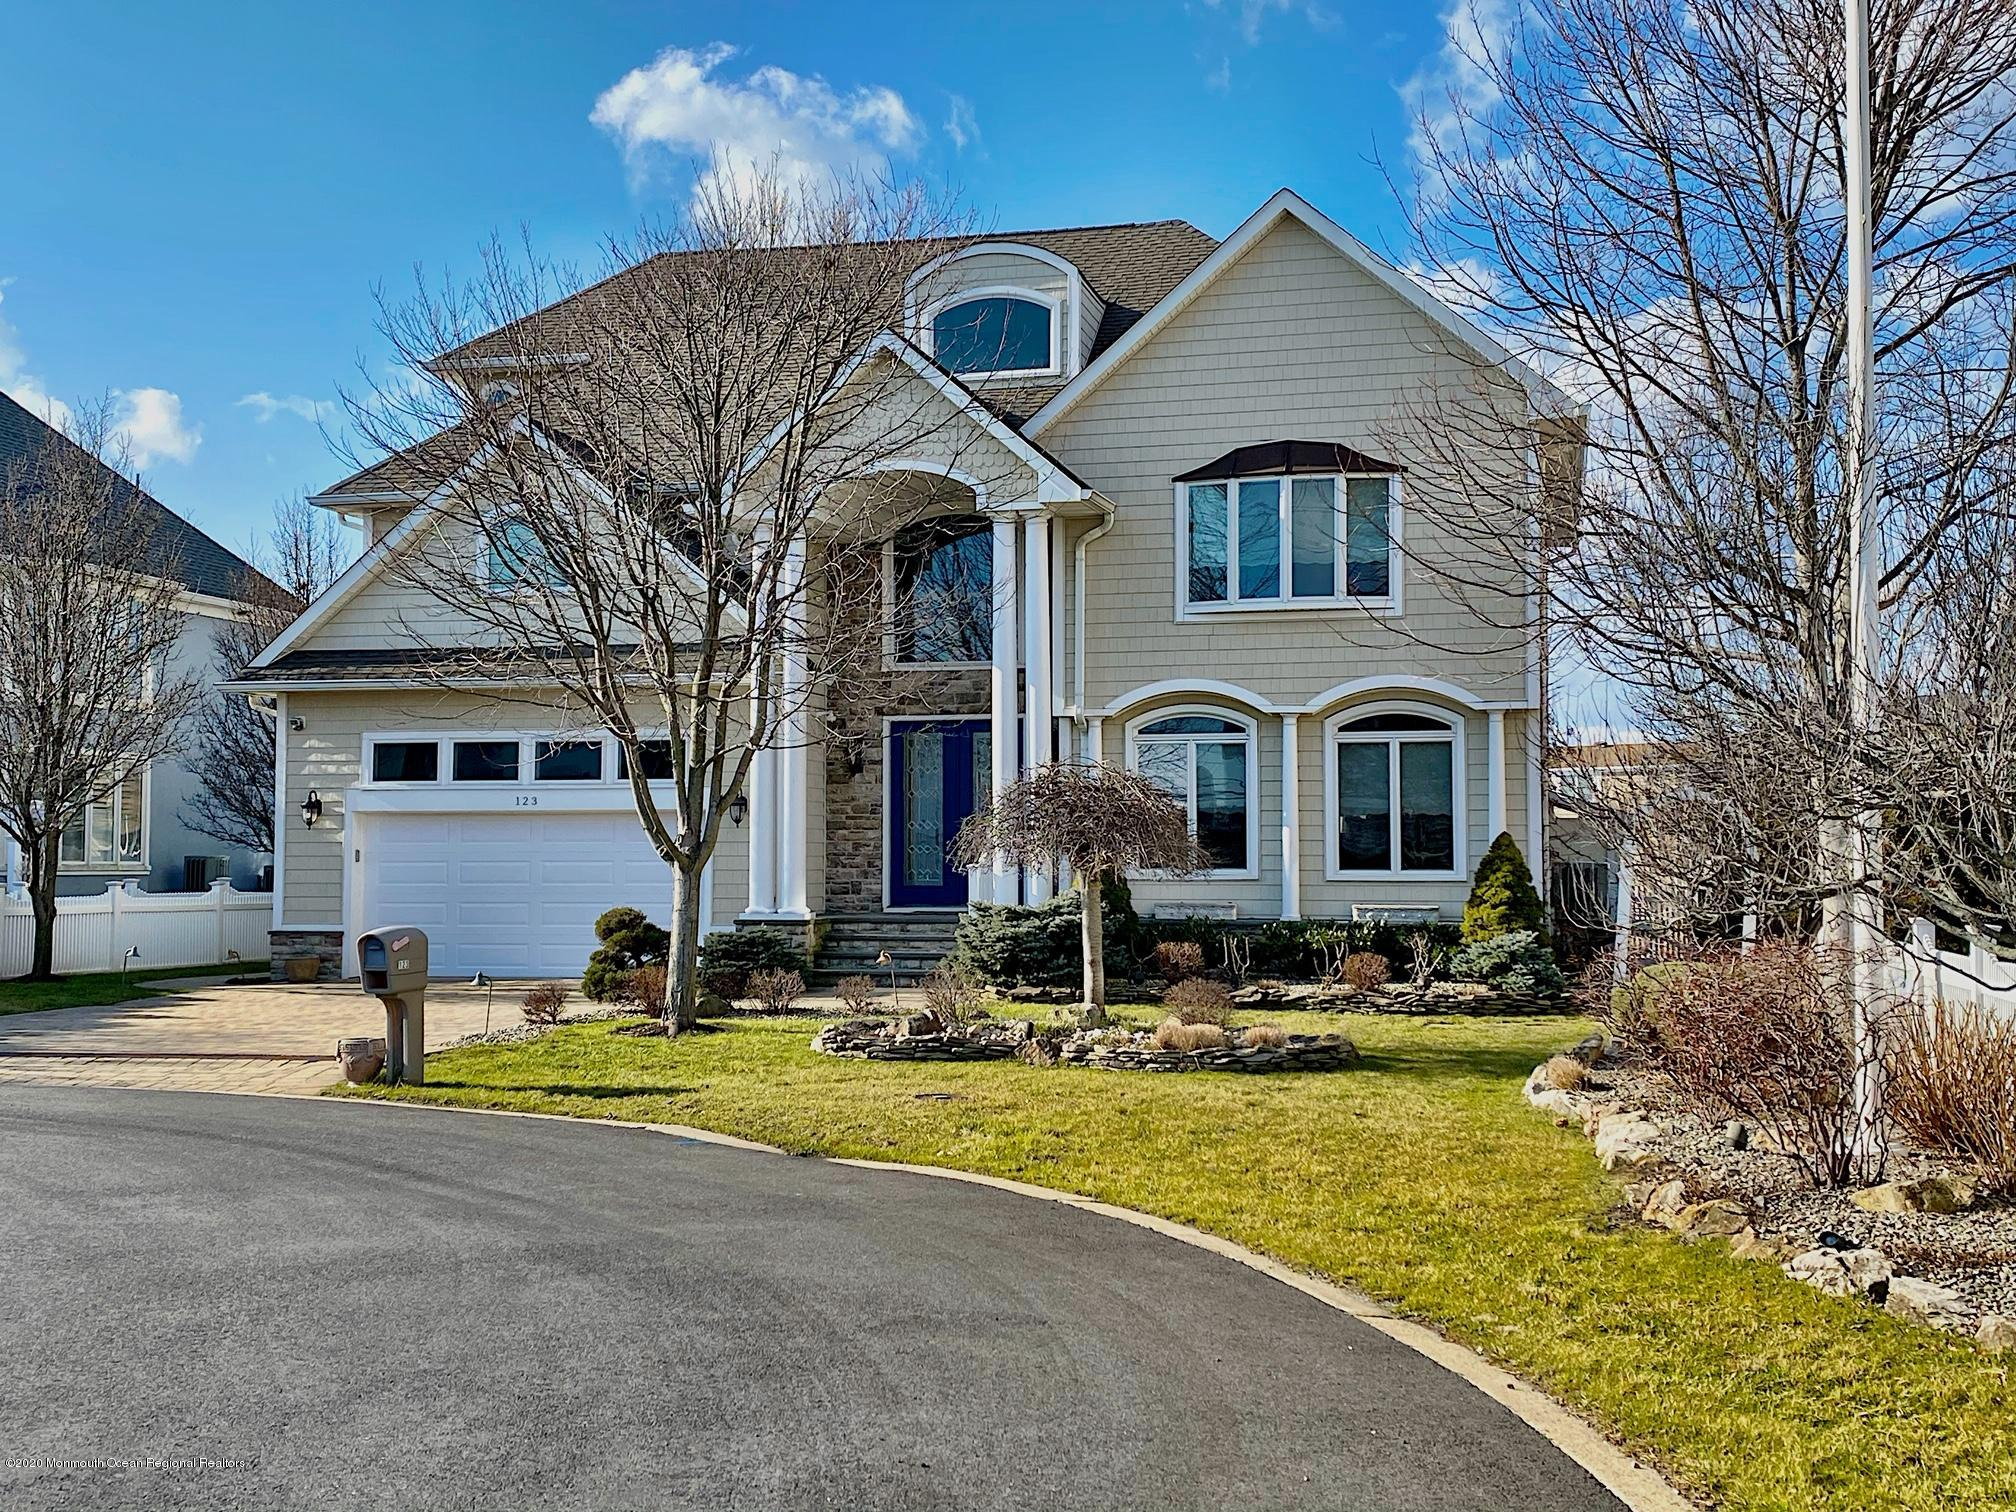 Photo of 123 Curtis Point Drive, Mantoloking, NJ 08738